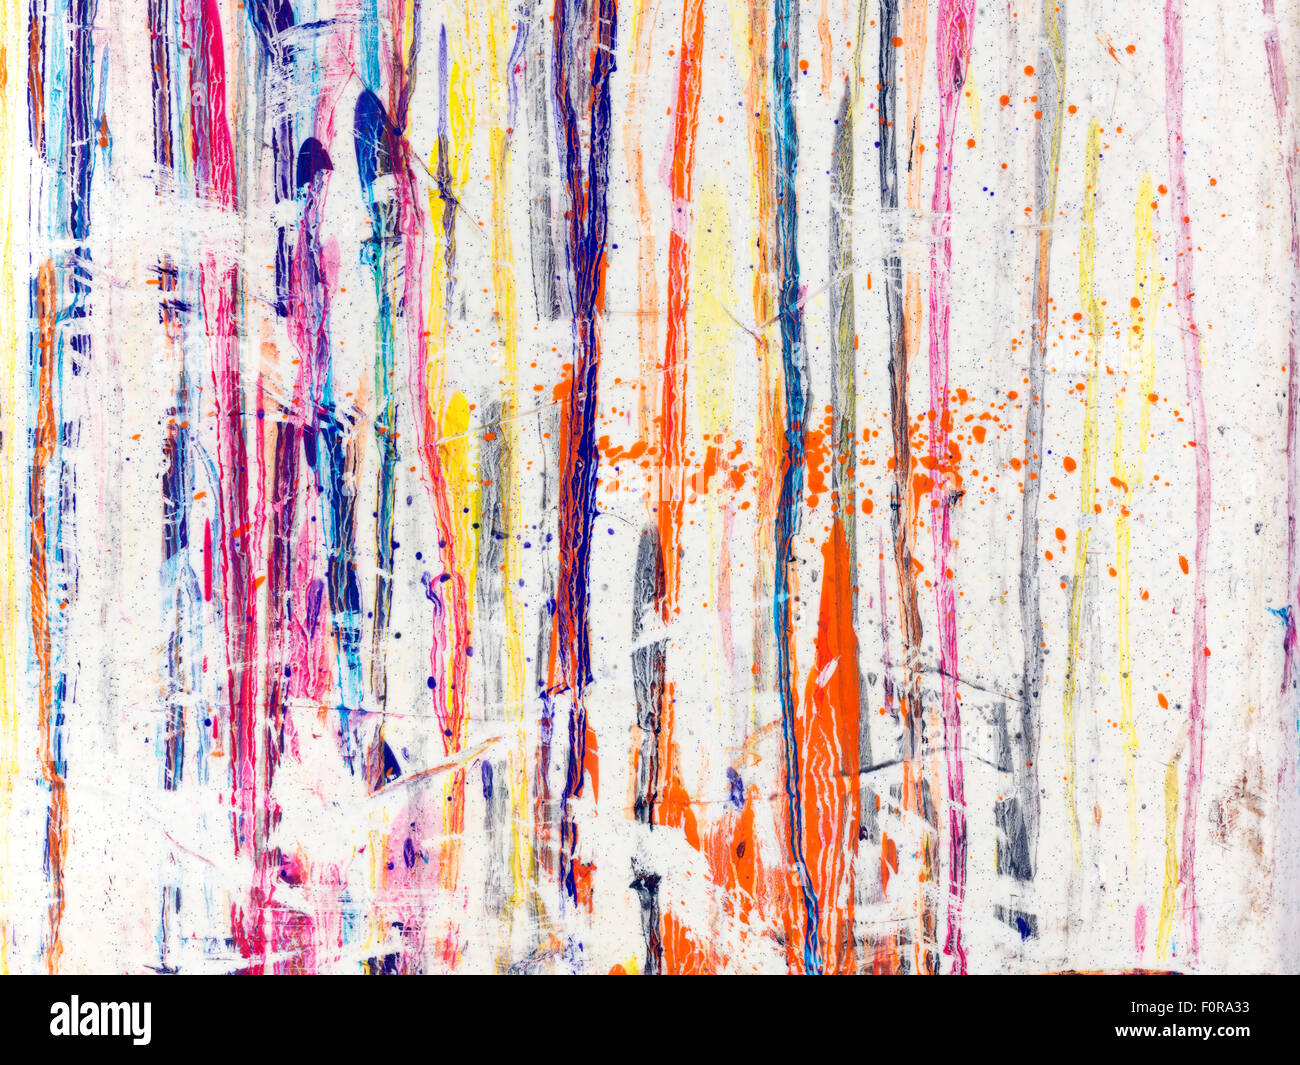 Splaterred paint on white background - Stock Image